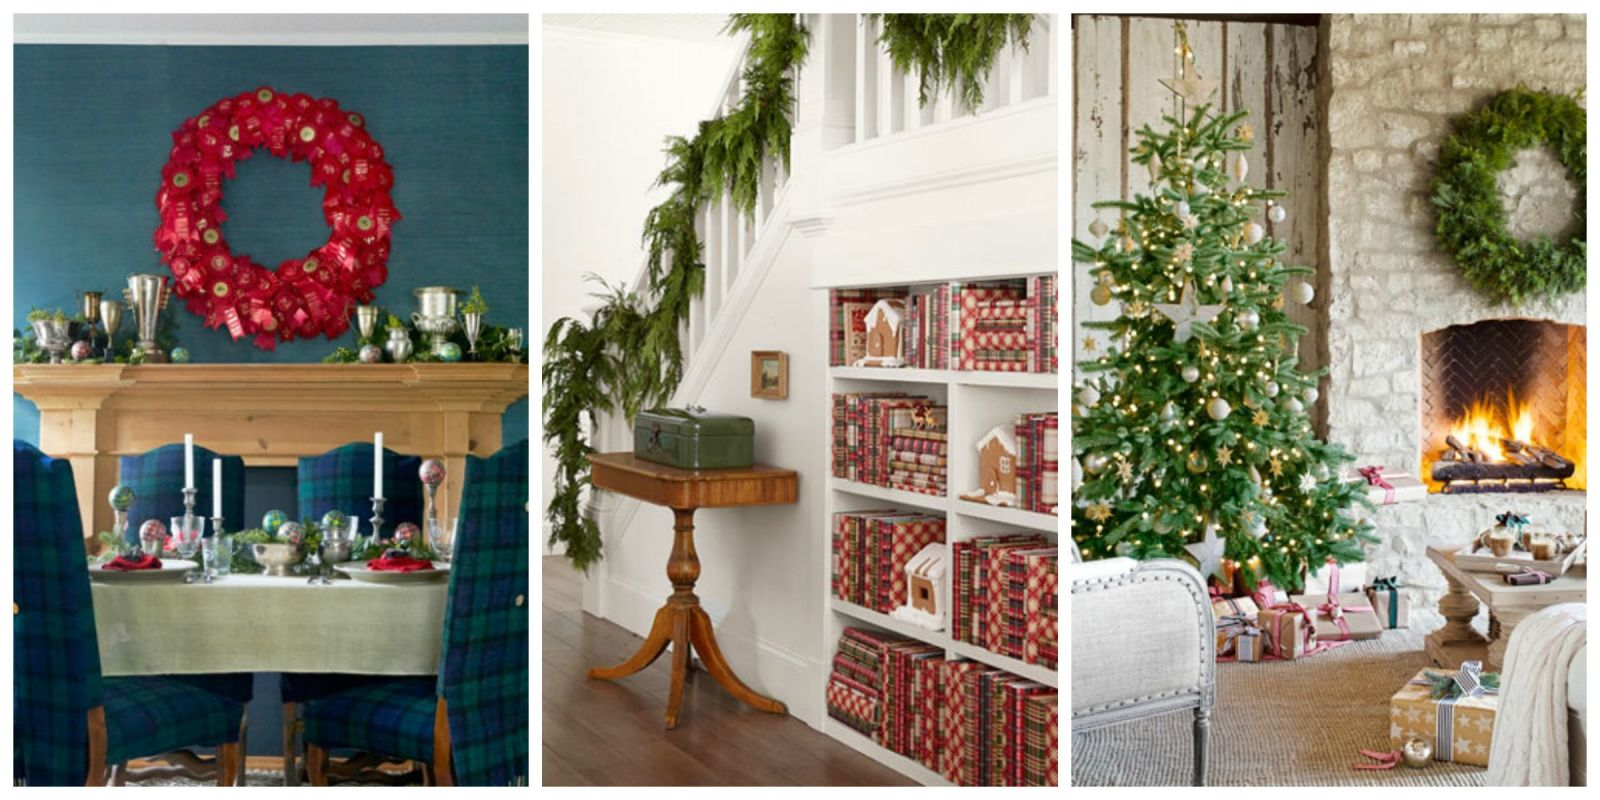 77 Country Christmas Decorations Holiday Decorating Ideas